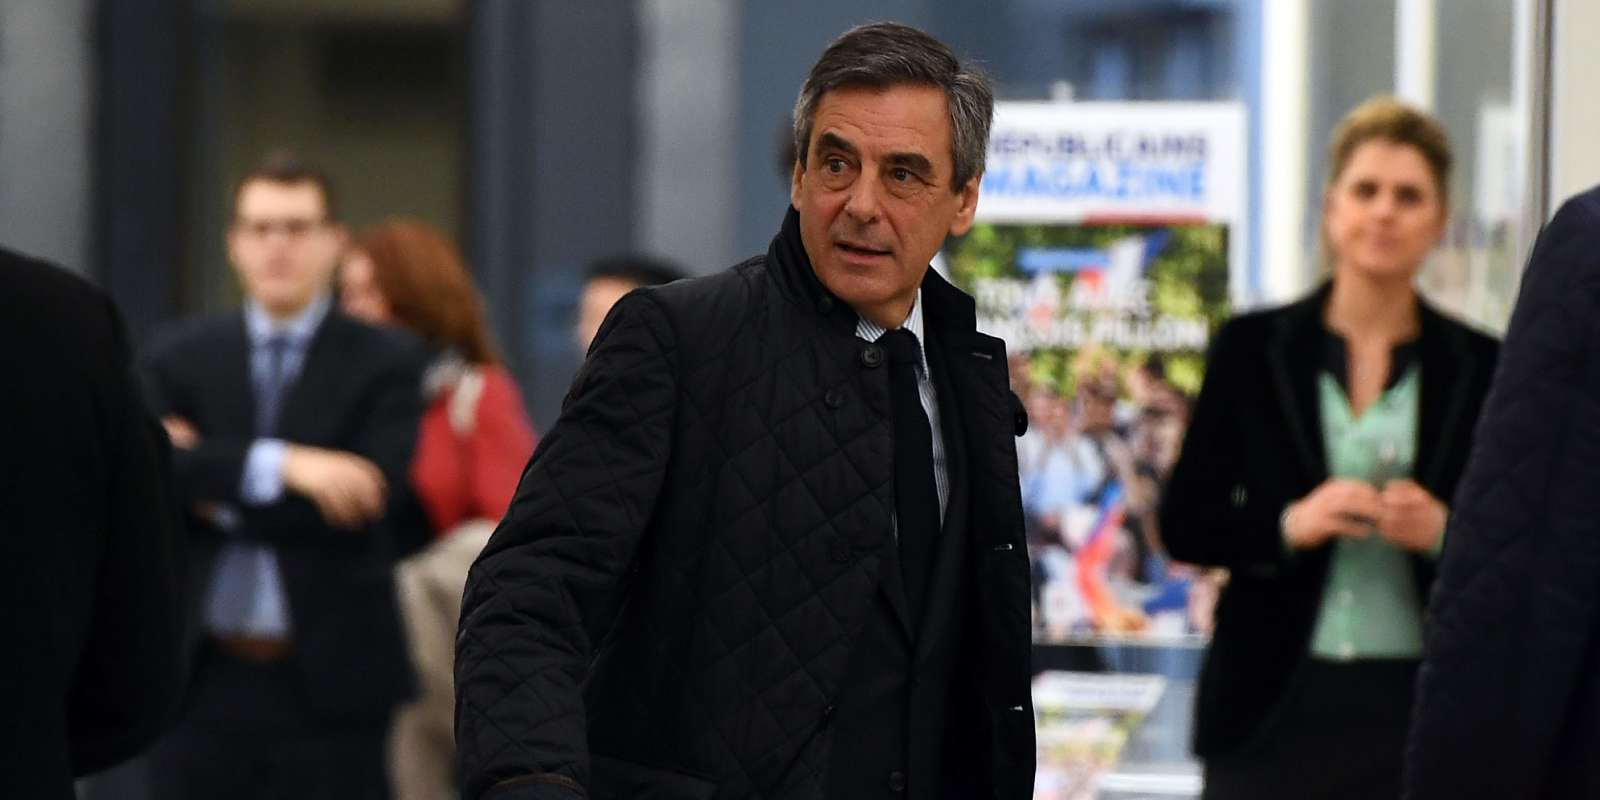 French presidential election candidate for the right-wing Les Republicains (LR) party Francois Fillon arrives at the headquarters of right-wing party Les Republicains (LR), on March 6, 2017 in Paris, to take part in a meeting to discuss his presidential candidacy amid calls for him to pull out over a